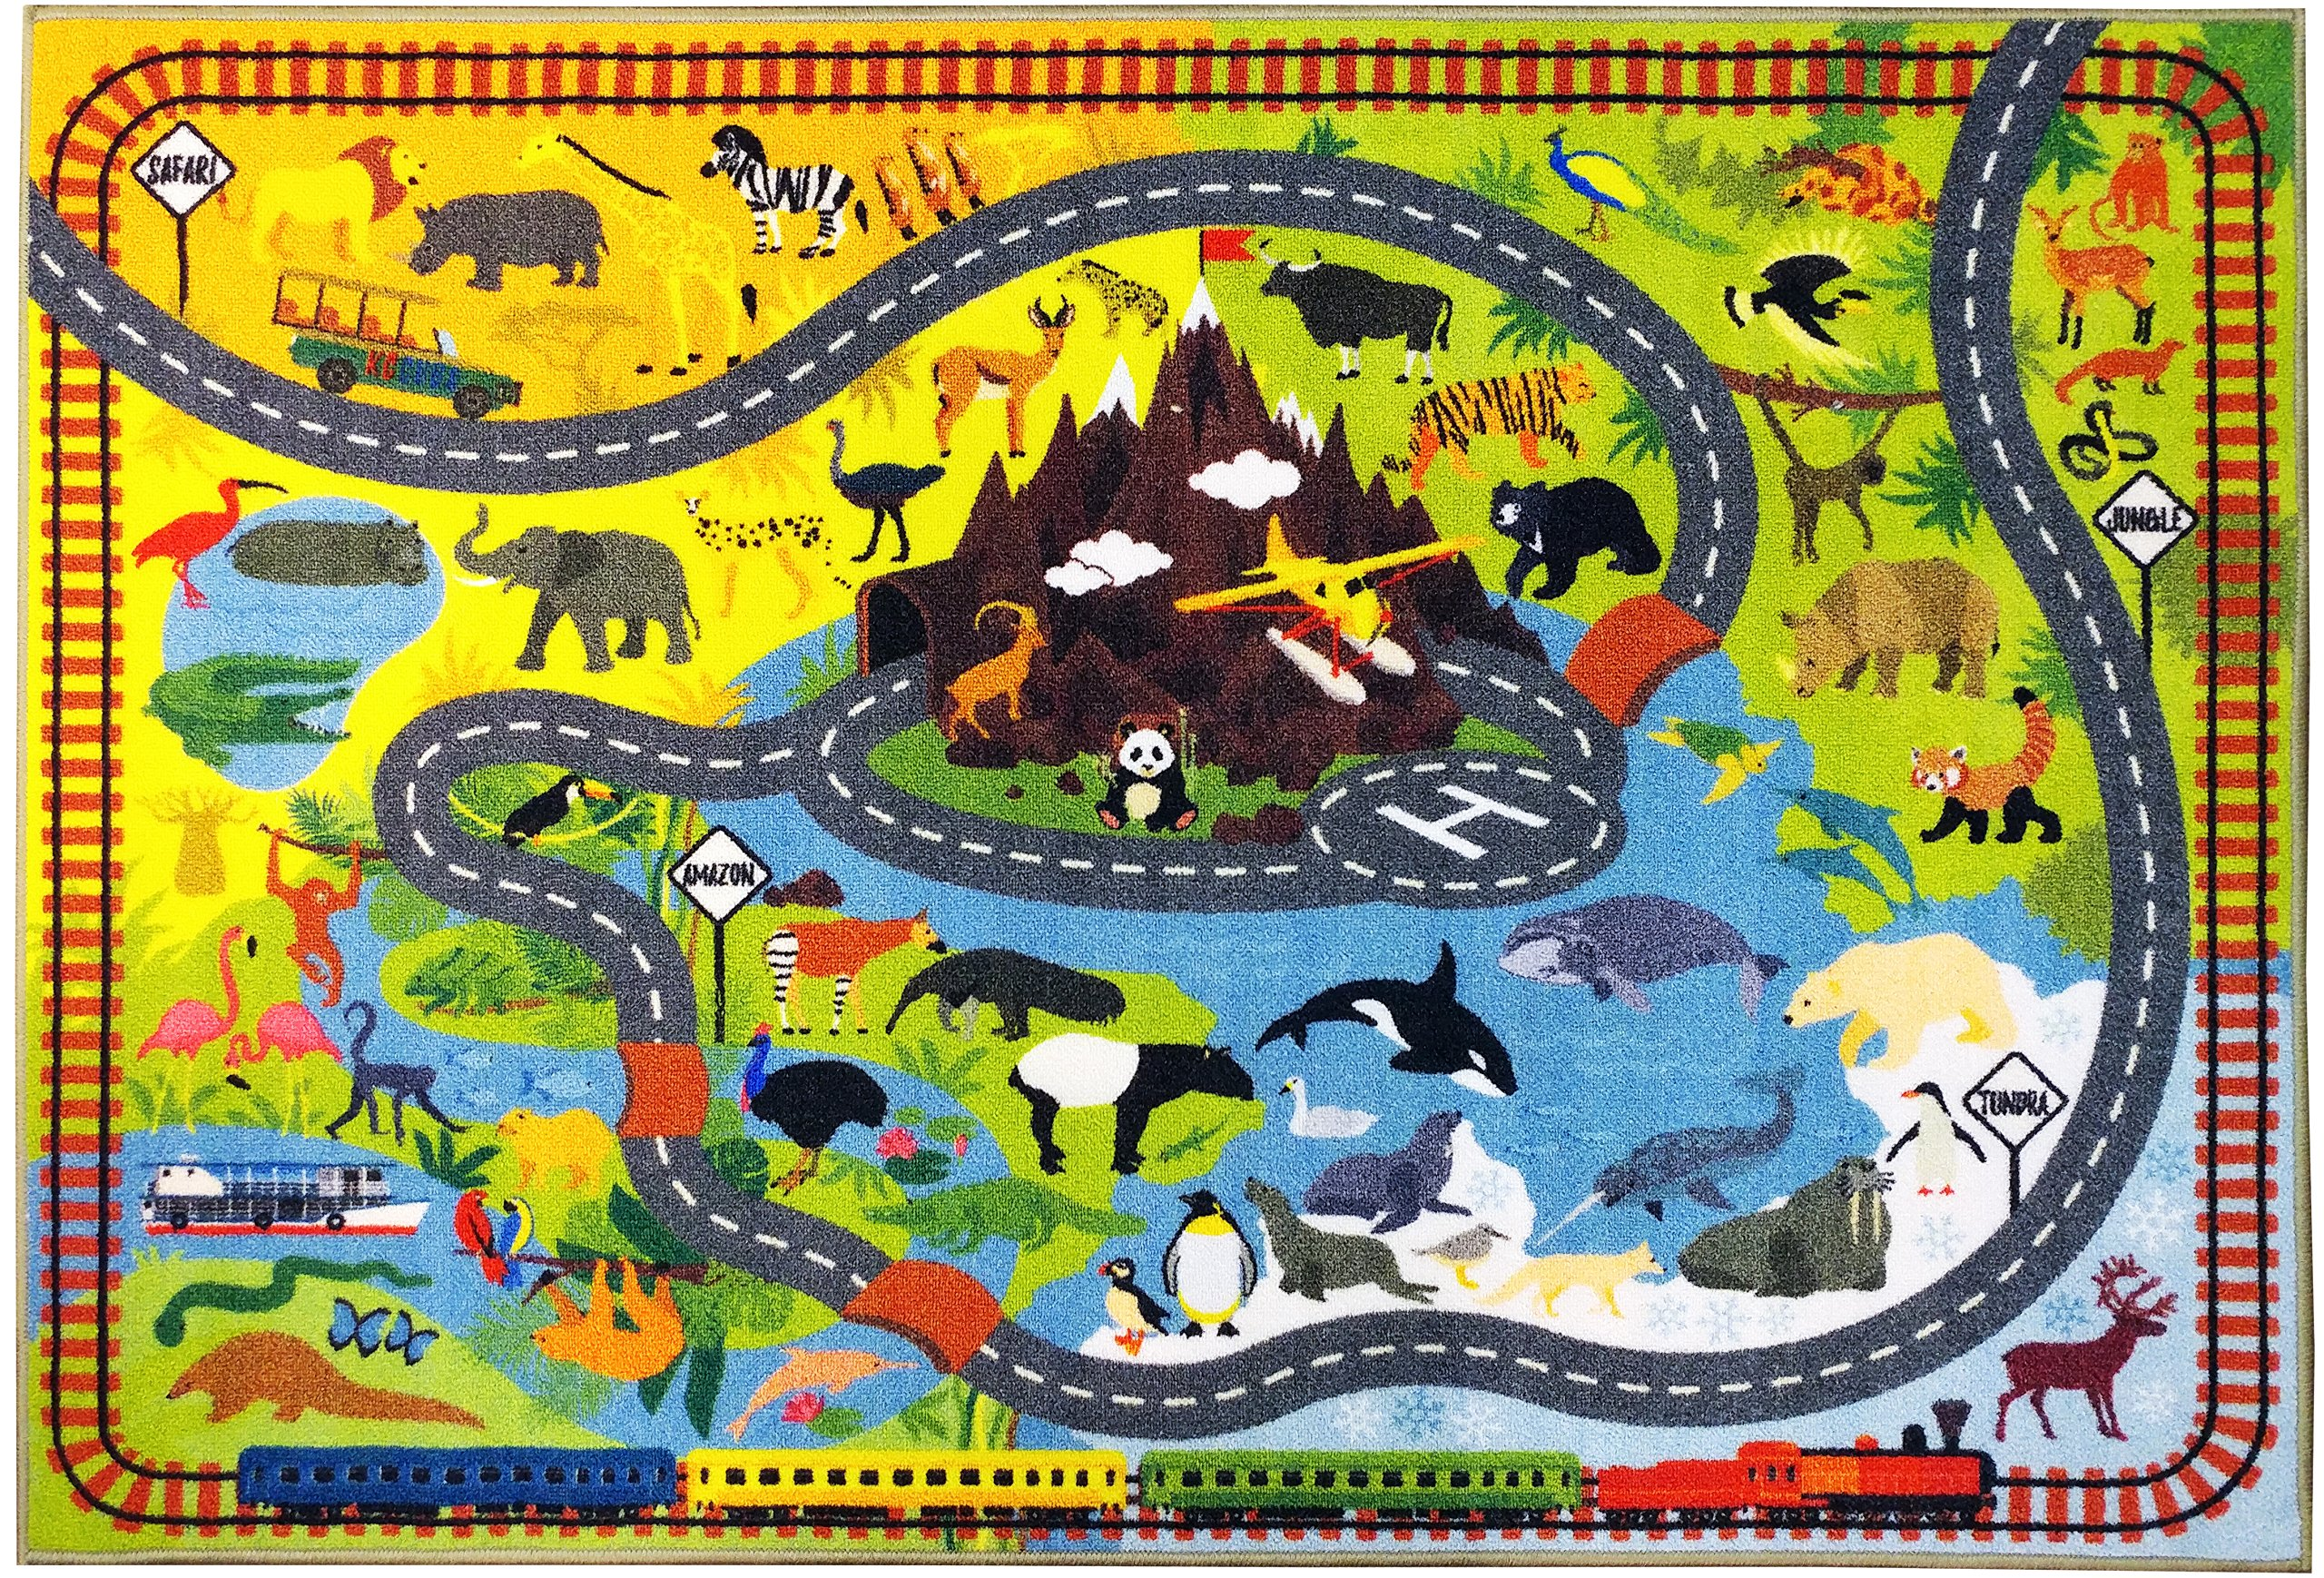 KC CUBS Playtime Collection Animal Safari Road Map Educational Learning and Game Area Rug Carpet for Kids and Children Bedrooms and Playroom (5' 0'' x 6' 6'')